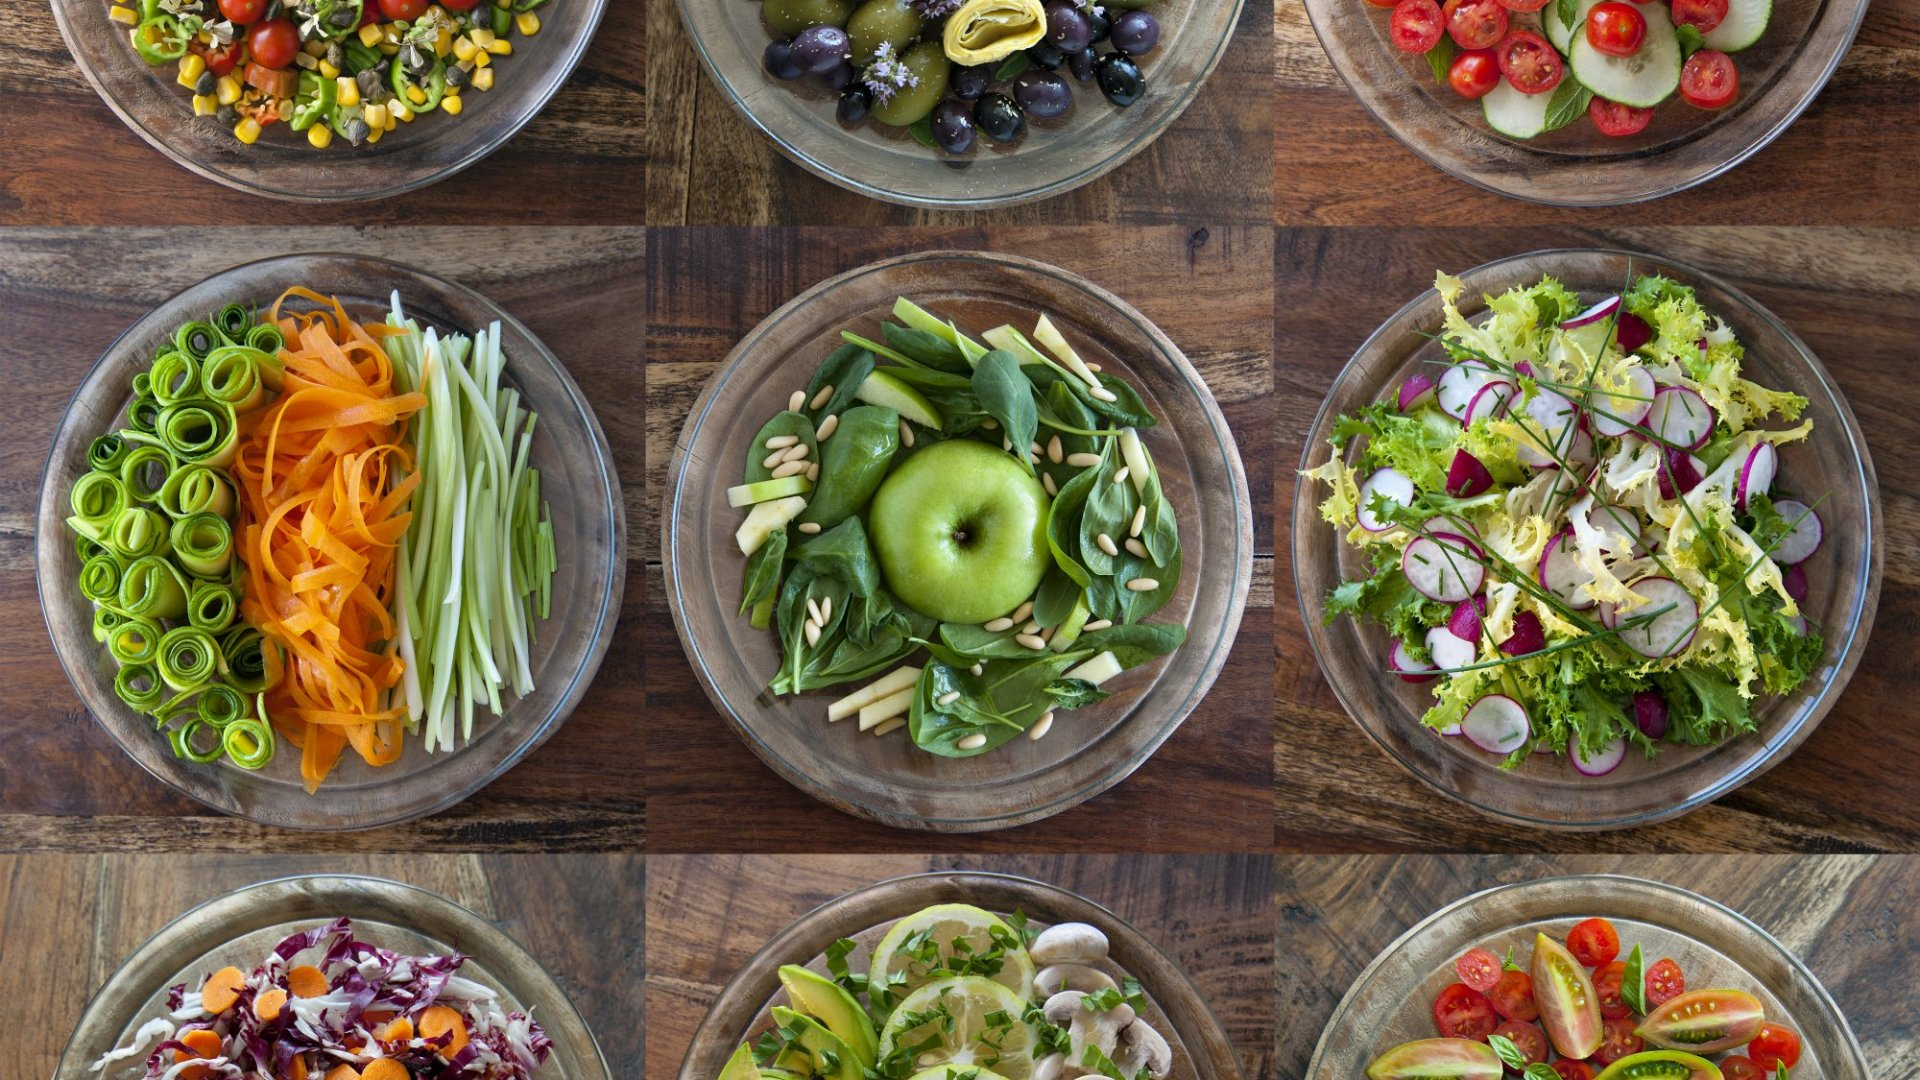 Want to Get Healthy in 2017? Science Finds This Diet is Good for Your Brain